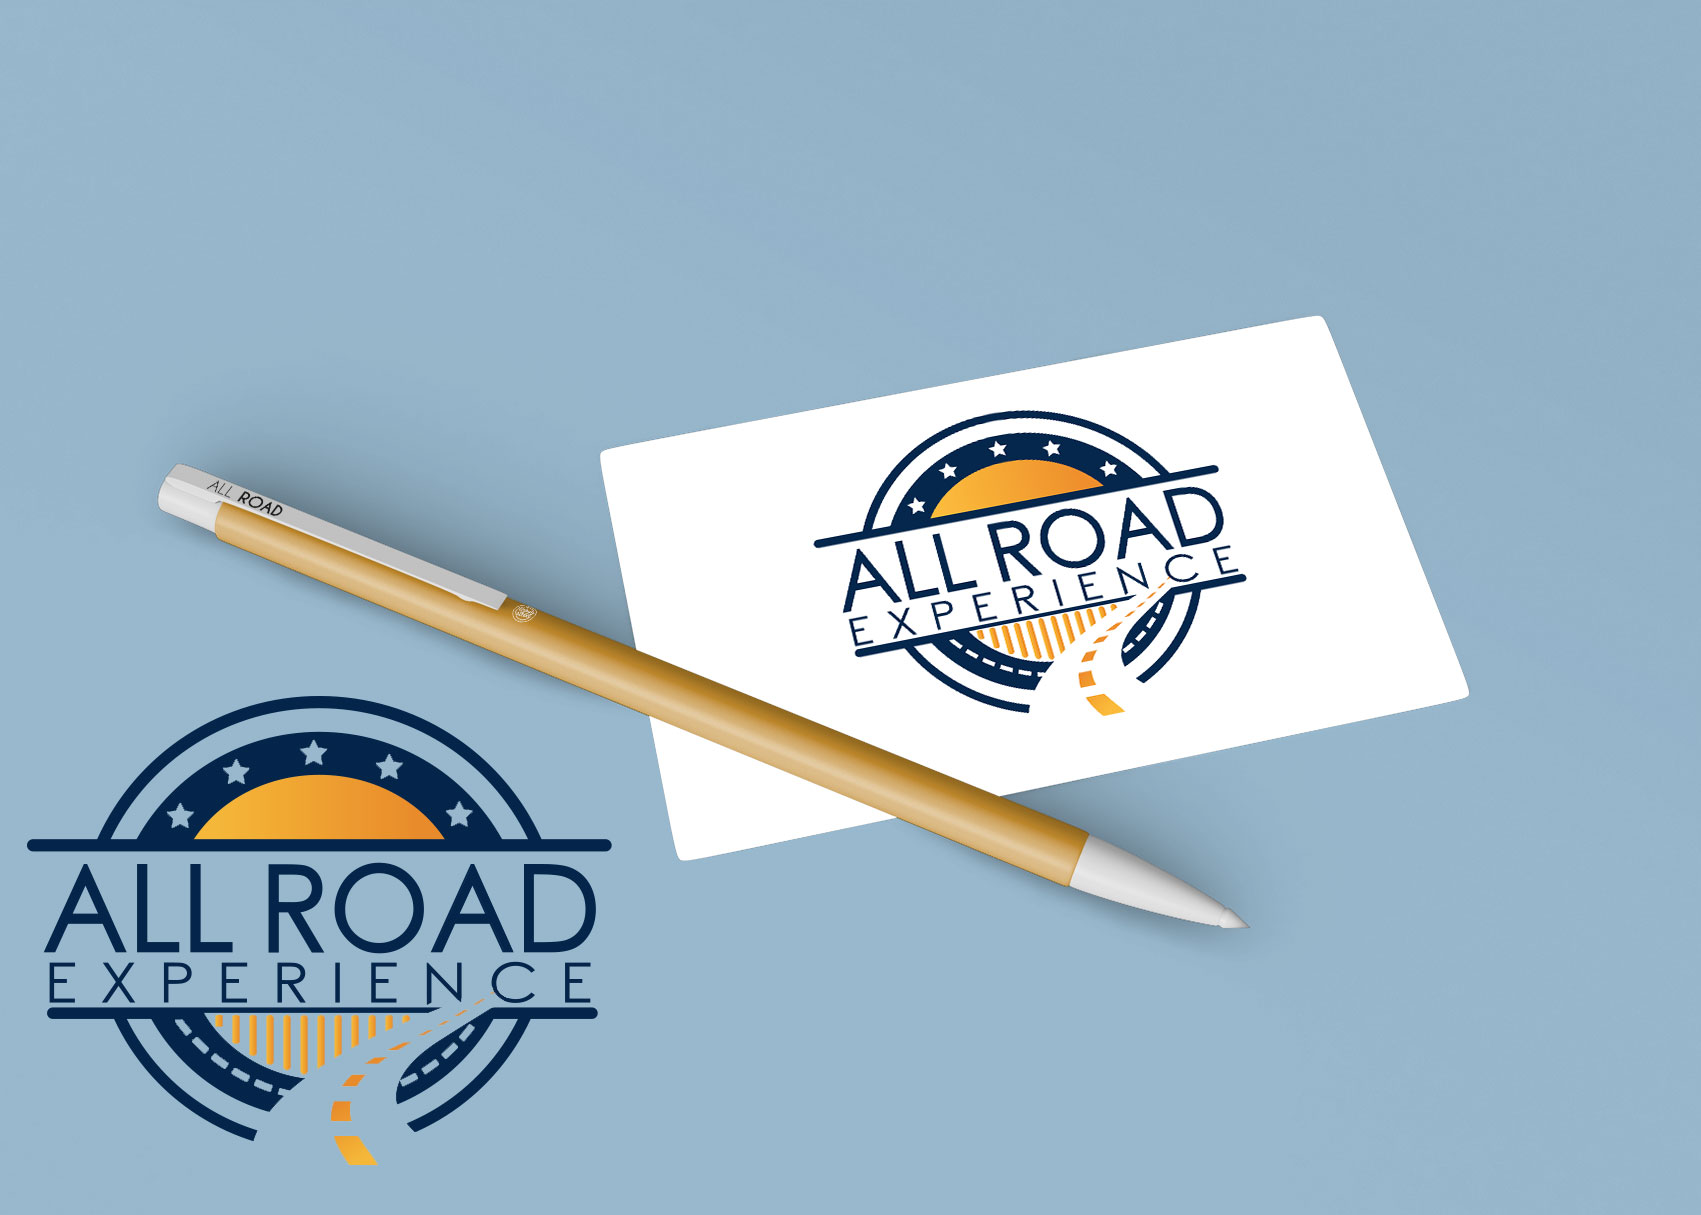 LOGO ALL-ROAD-EXPERIENCE-skoncommunication-v-148